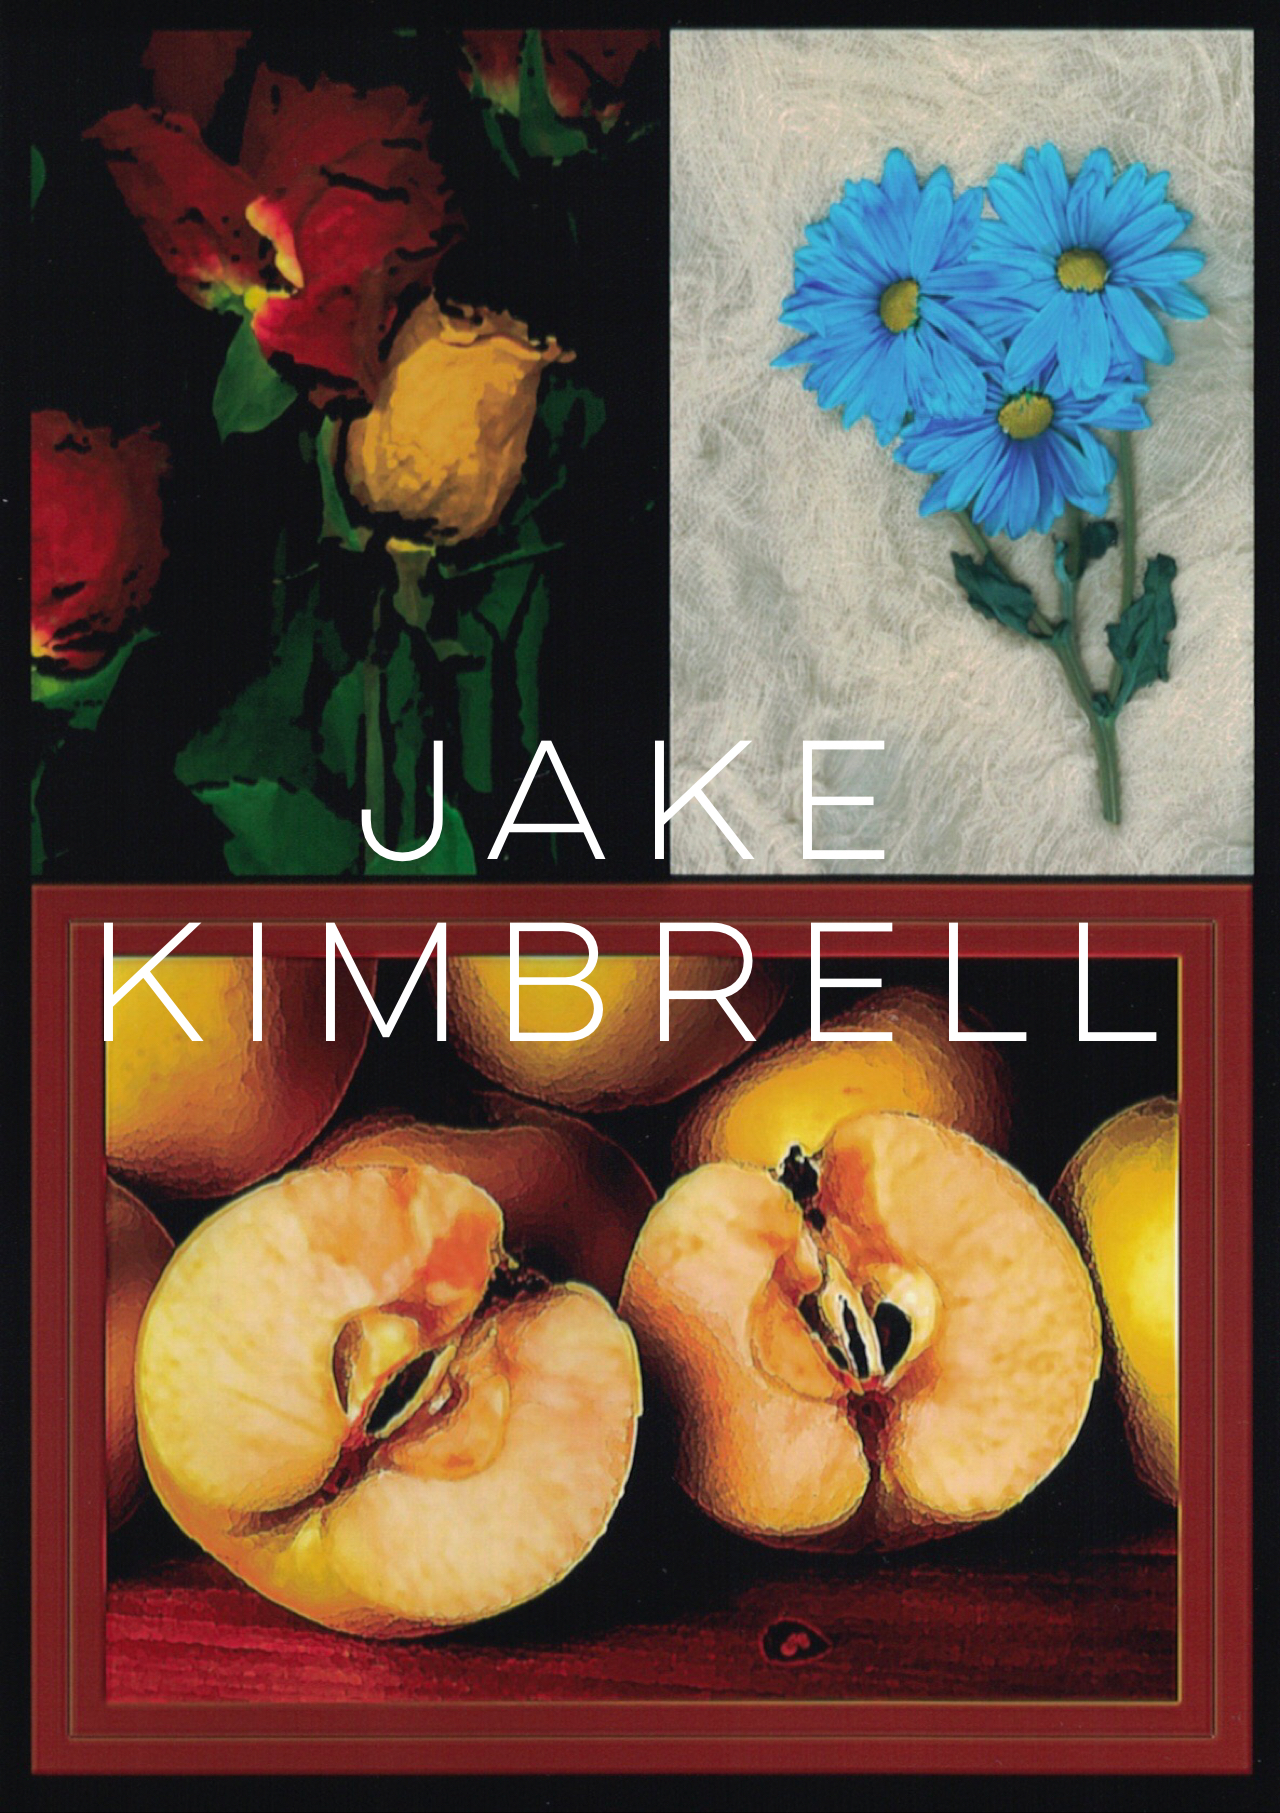 Previous Artist: Jake Kimbrell. November 8, 2015 – February 7, 2016